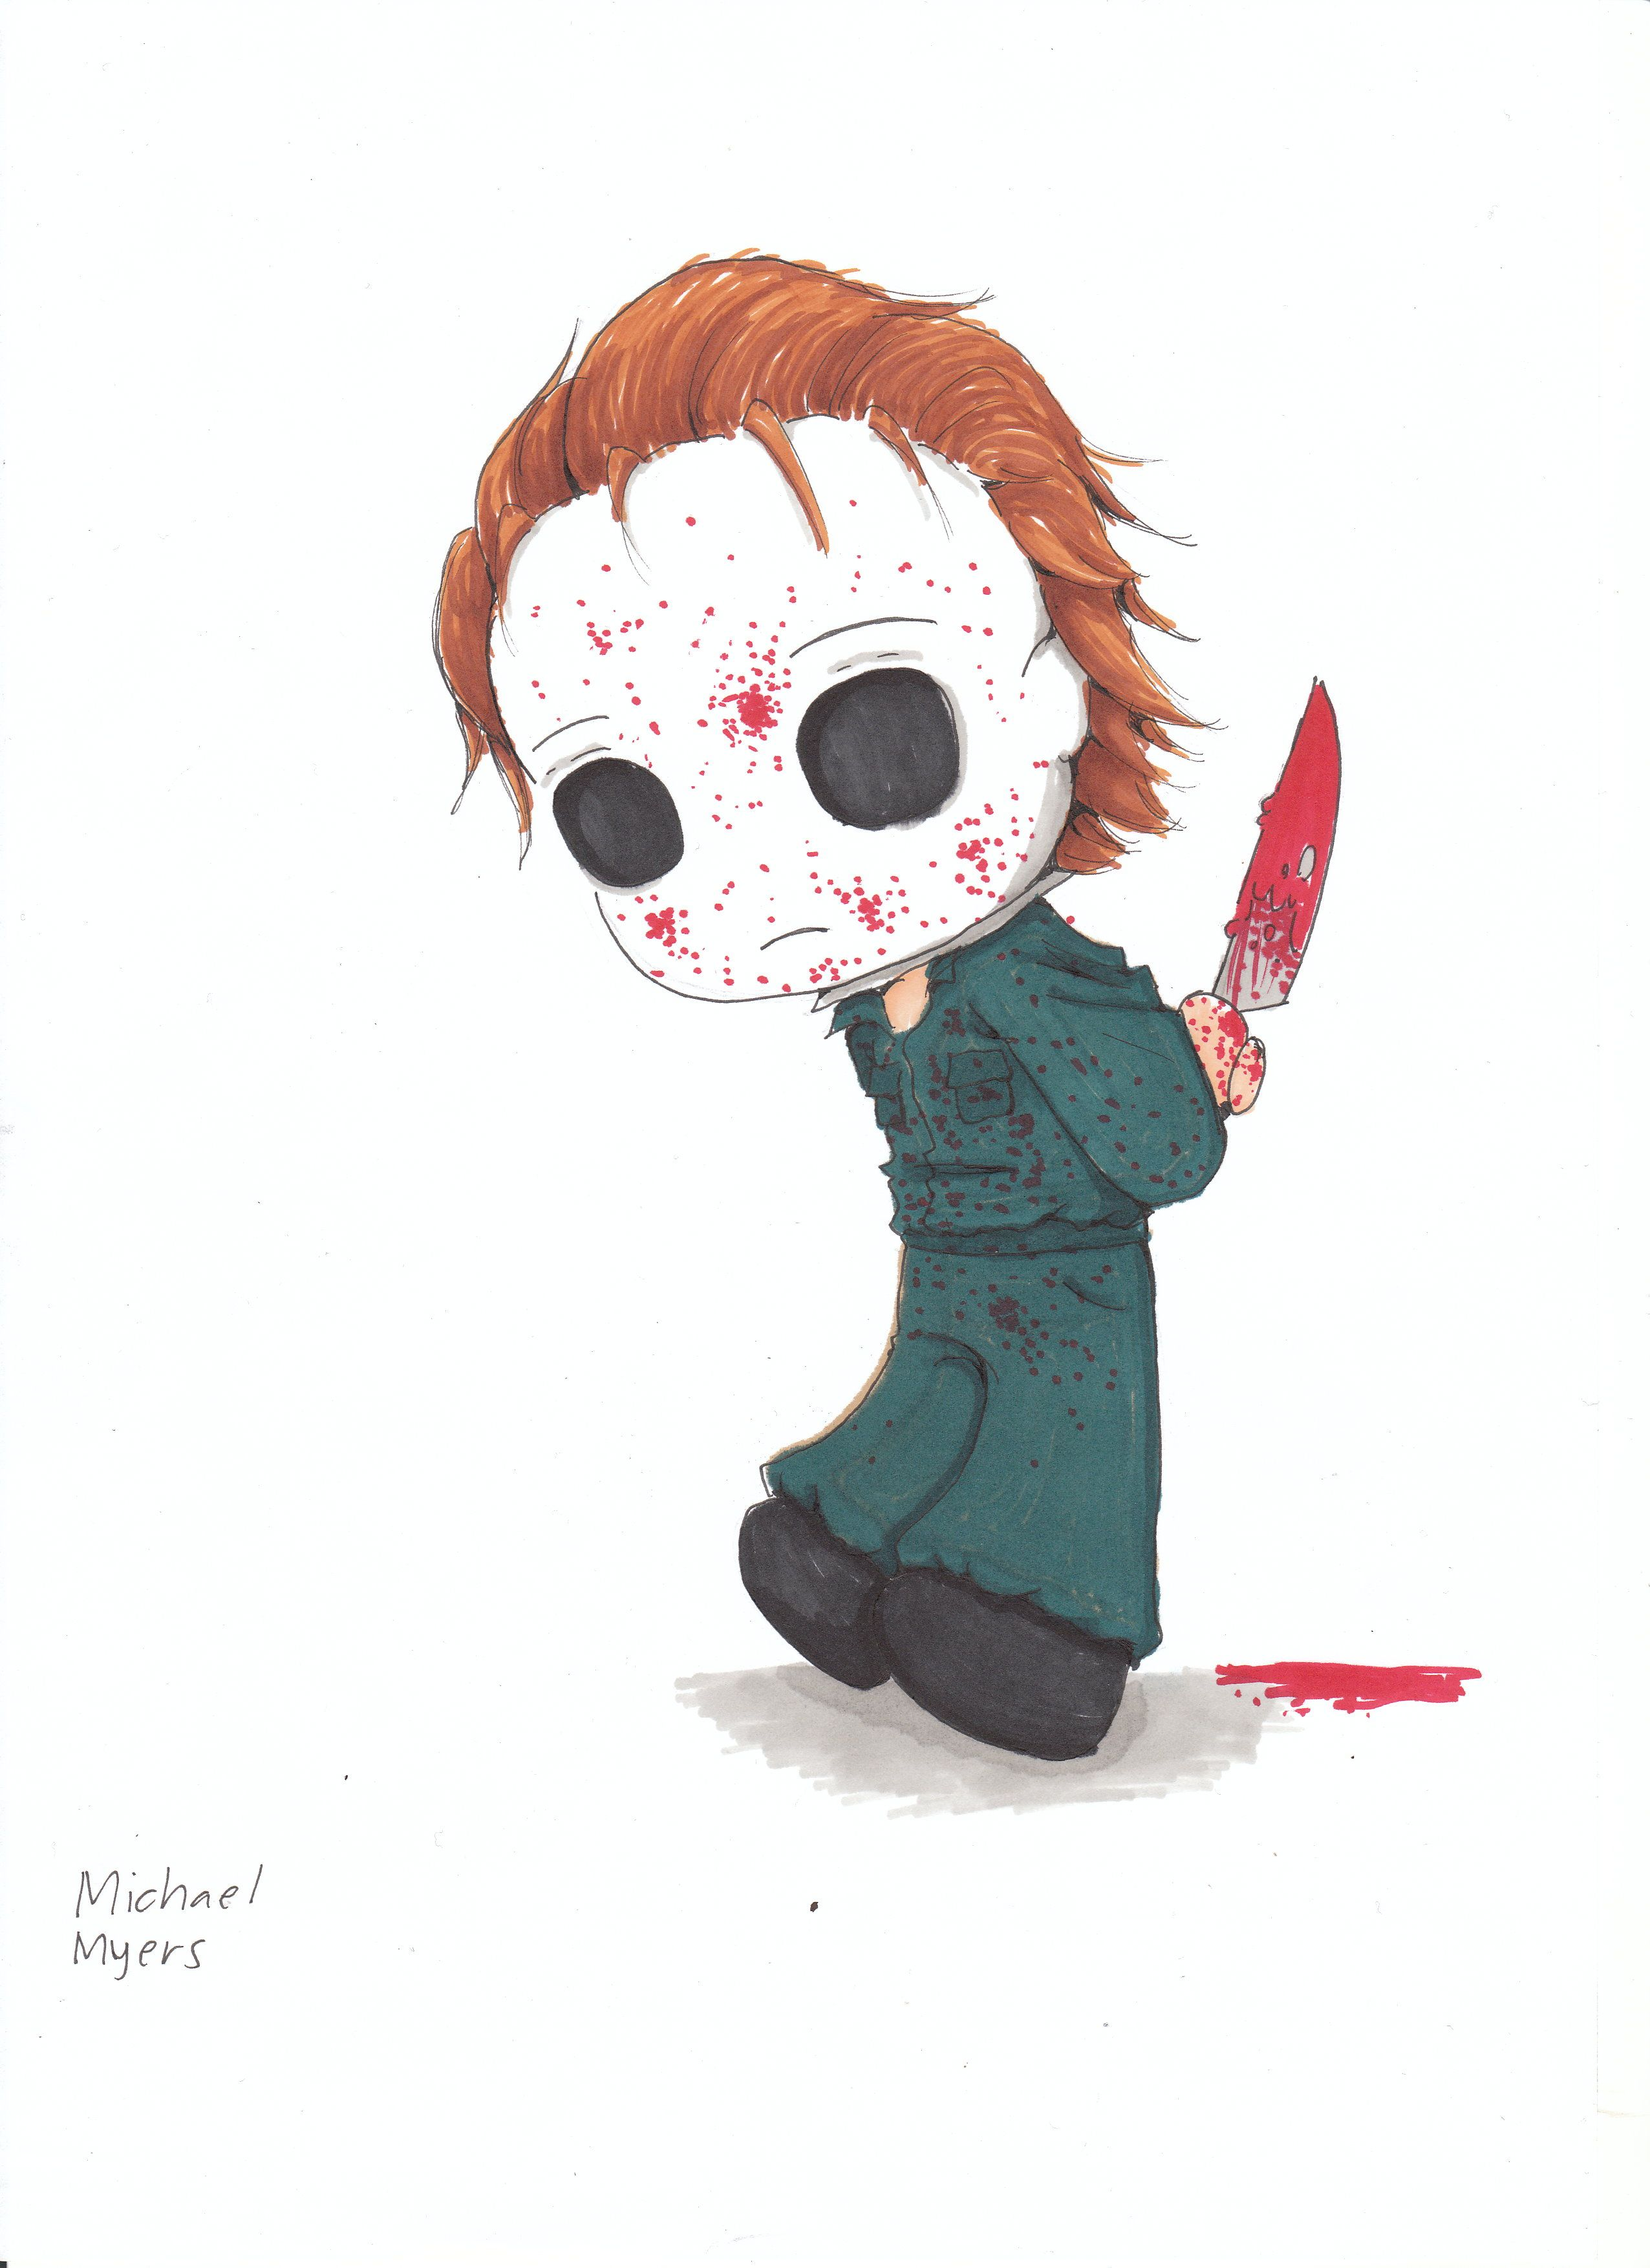 Cute Michael Myers With Images Horror Art Creepiest Horror